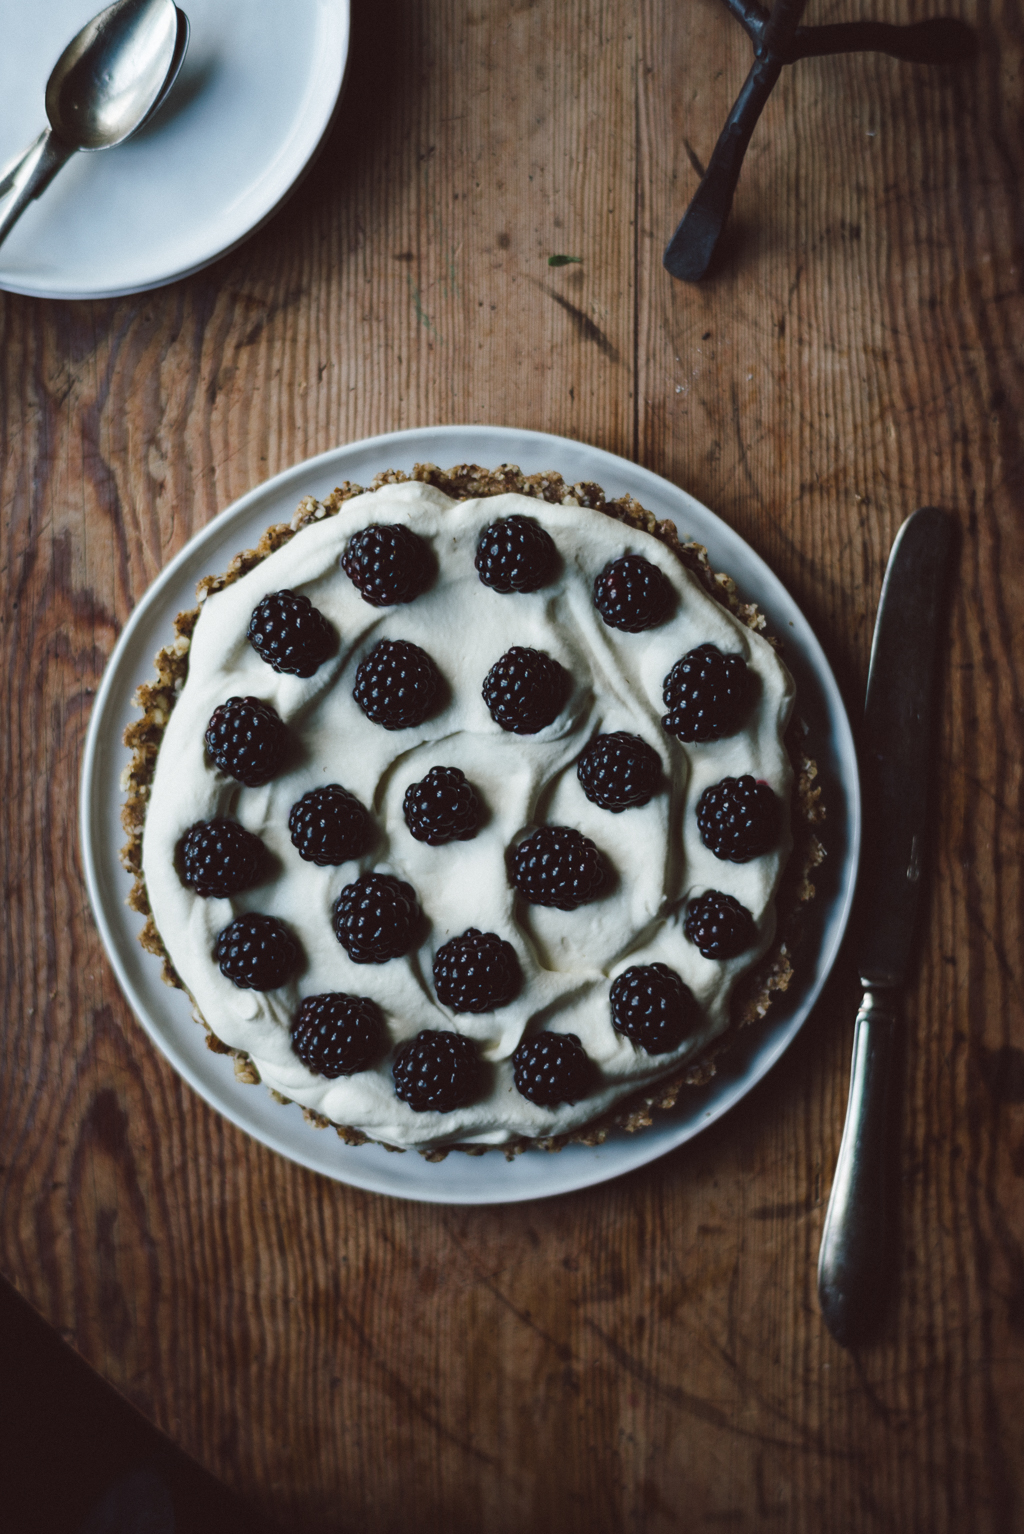 Raw black berry cake by Babes in Boyland